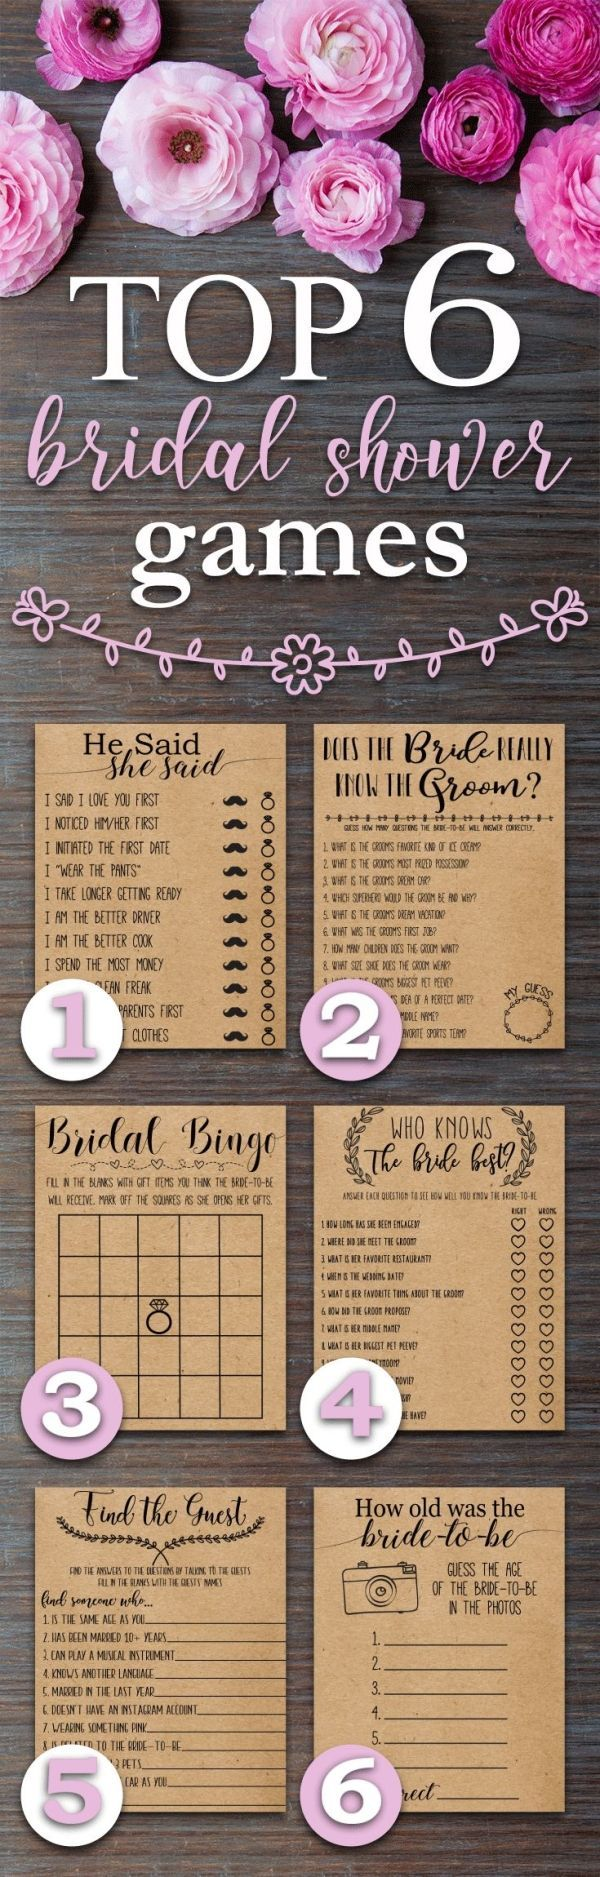 Top 6 Bridal Shower Games. Fun, Rustic, funny, bridal shower games. Perfect for a wedding shower with a country, barn, outdoors, bohemian, rustic theme. by rhea